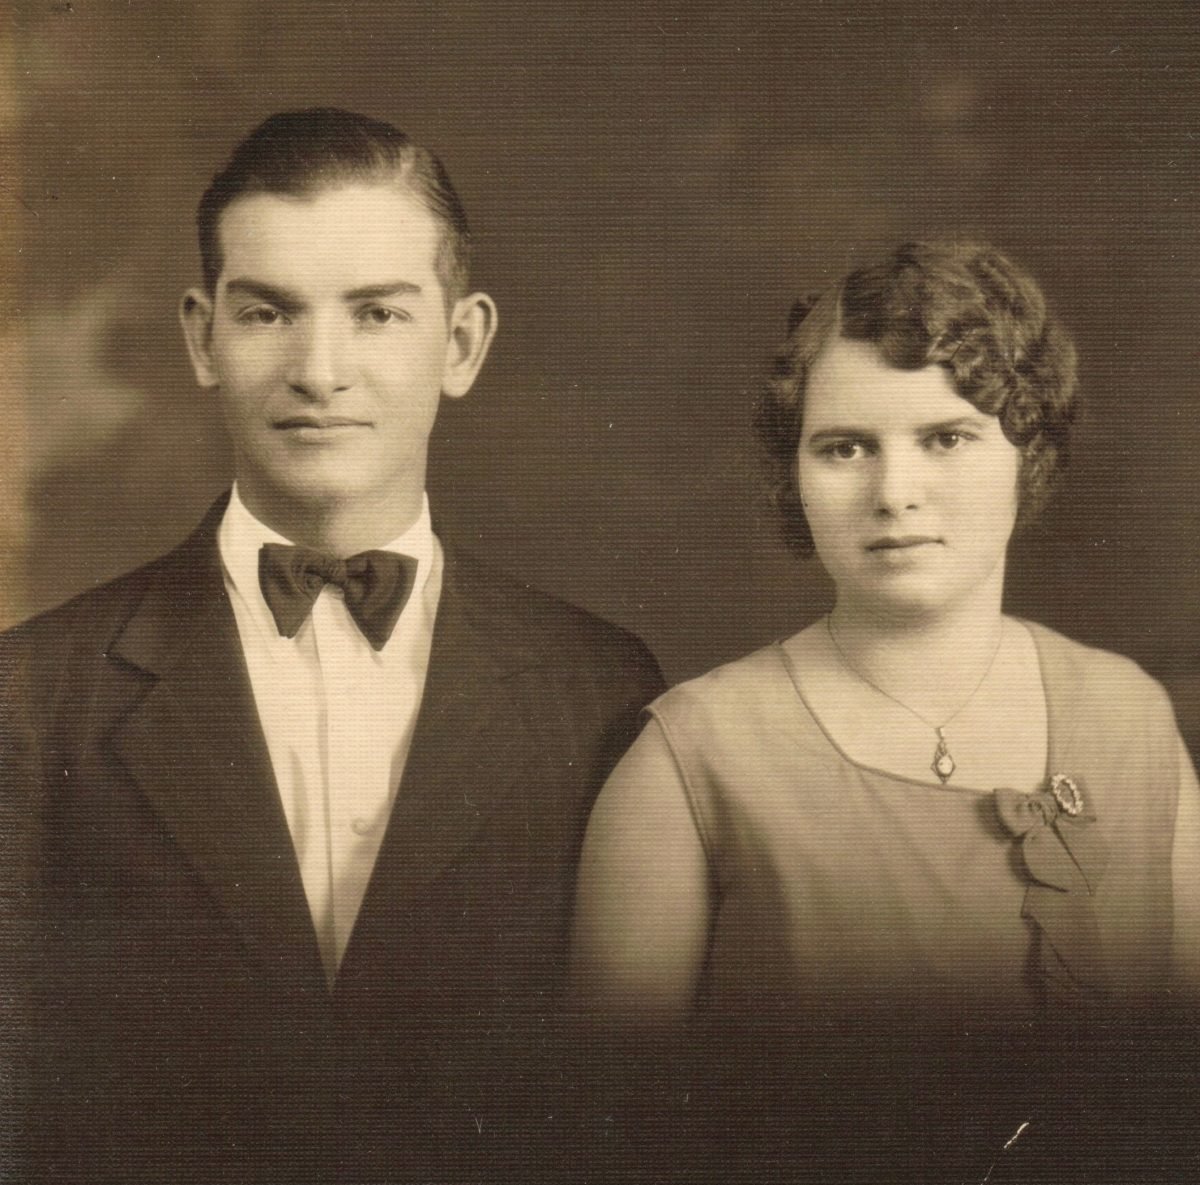 Carl Gahimer and Mabel Wagoner